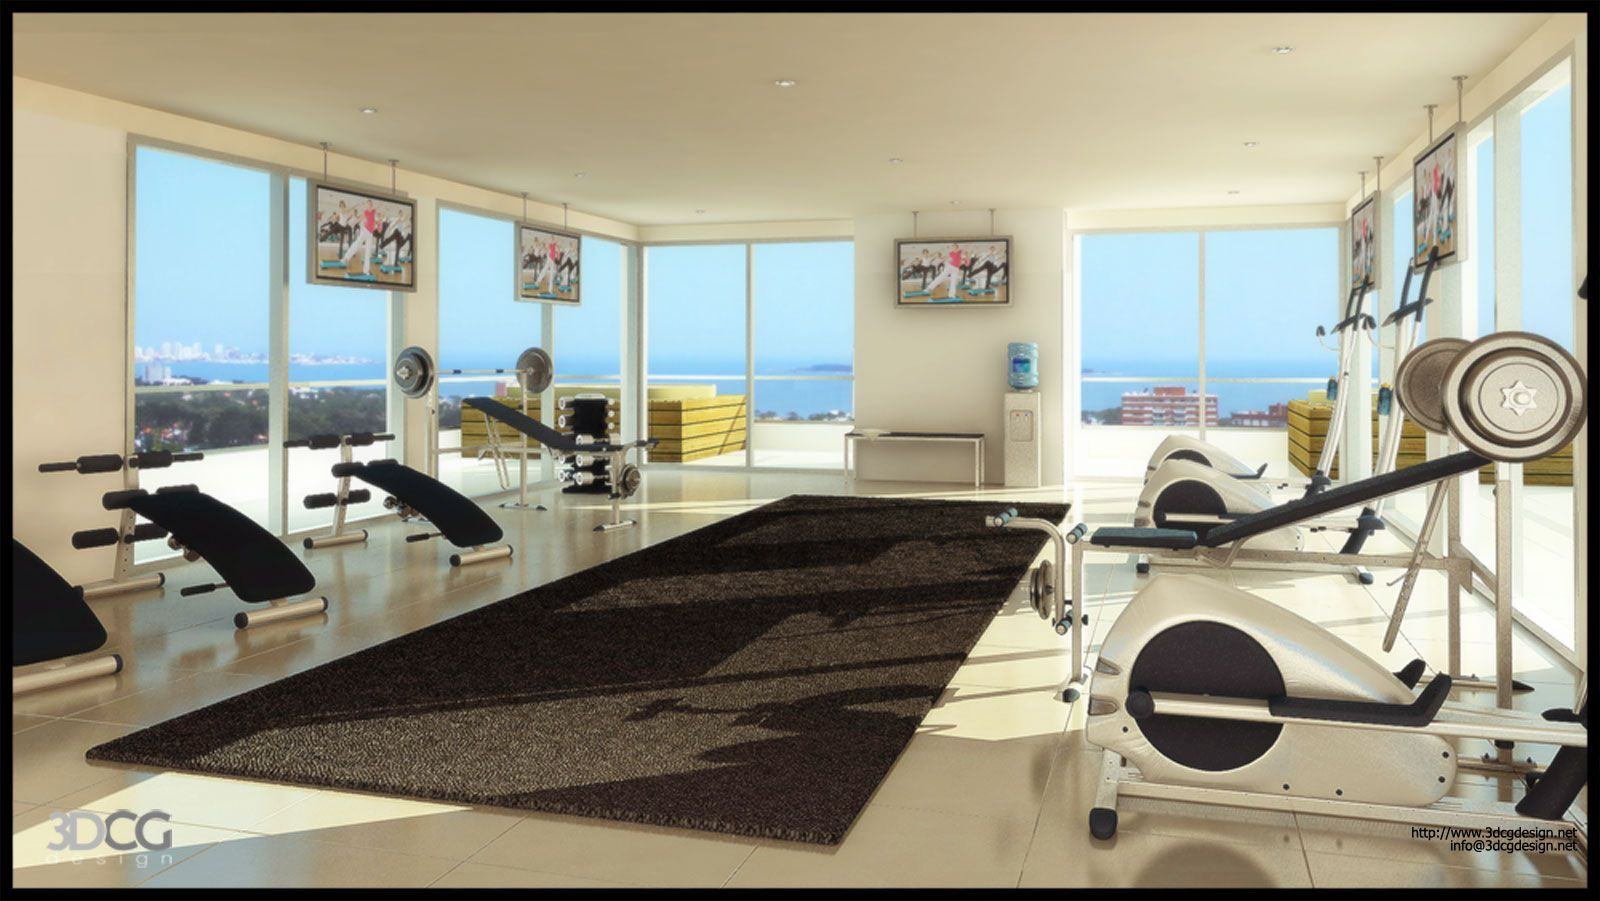 Beautiful Today Post Will Explain About Cool Home Gym In Loft Design Ideas With  Resolution 870x490 And Great Ideas